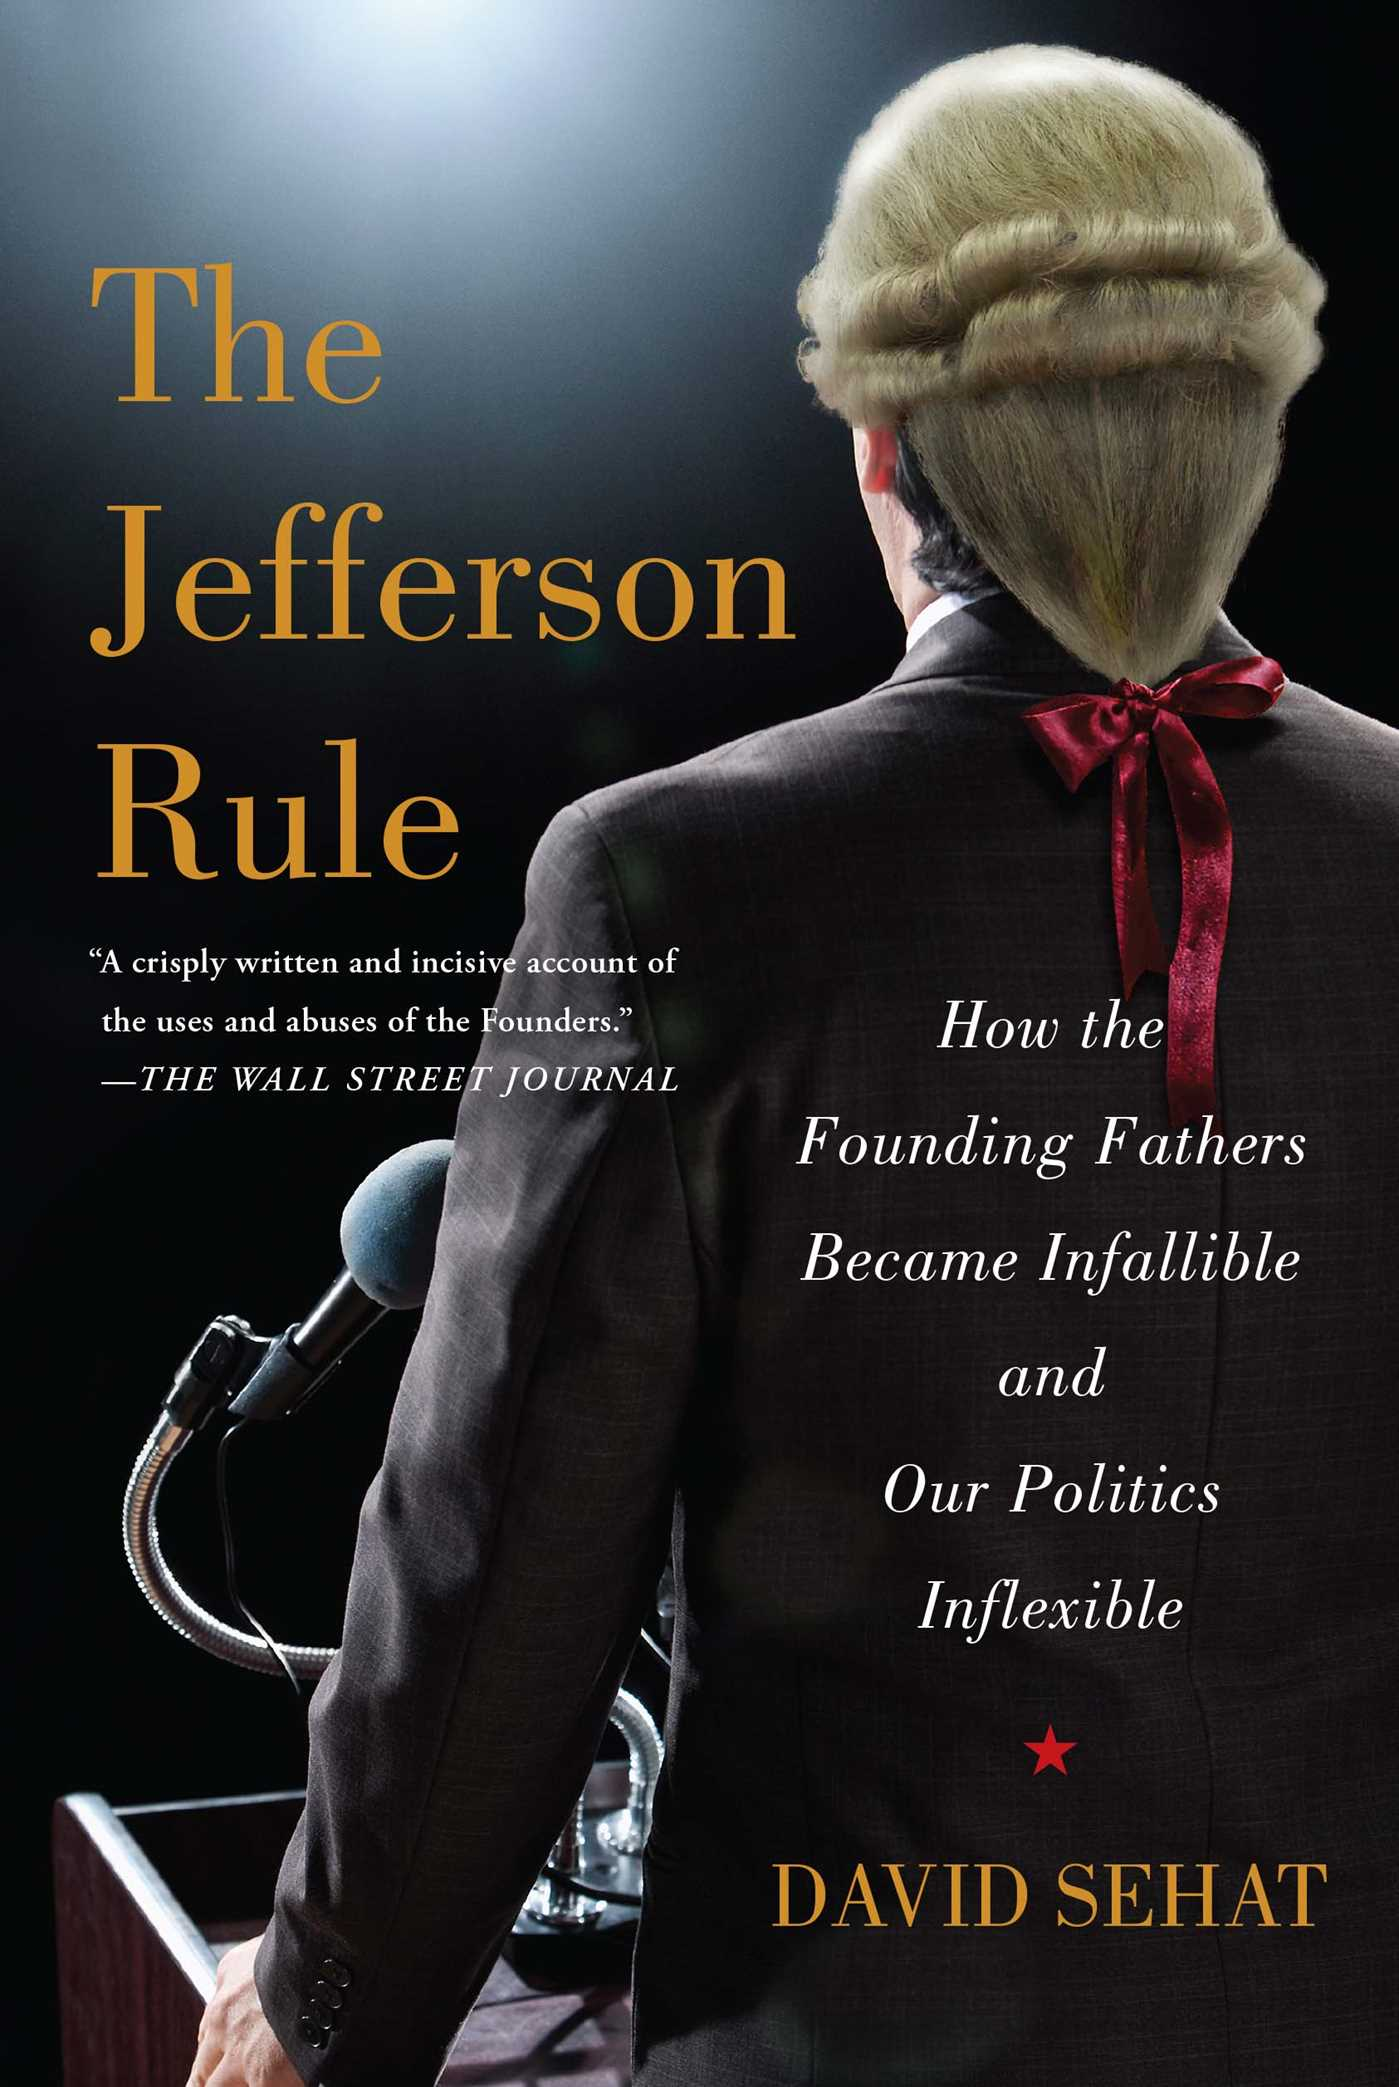 The Jefferson Rule  Book By David Sehat  Official Publisher Page  Simon  & Schuster